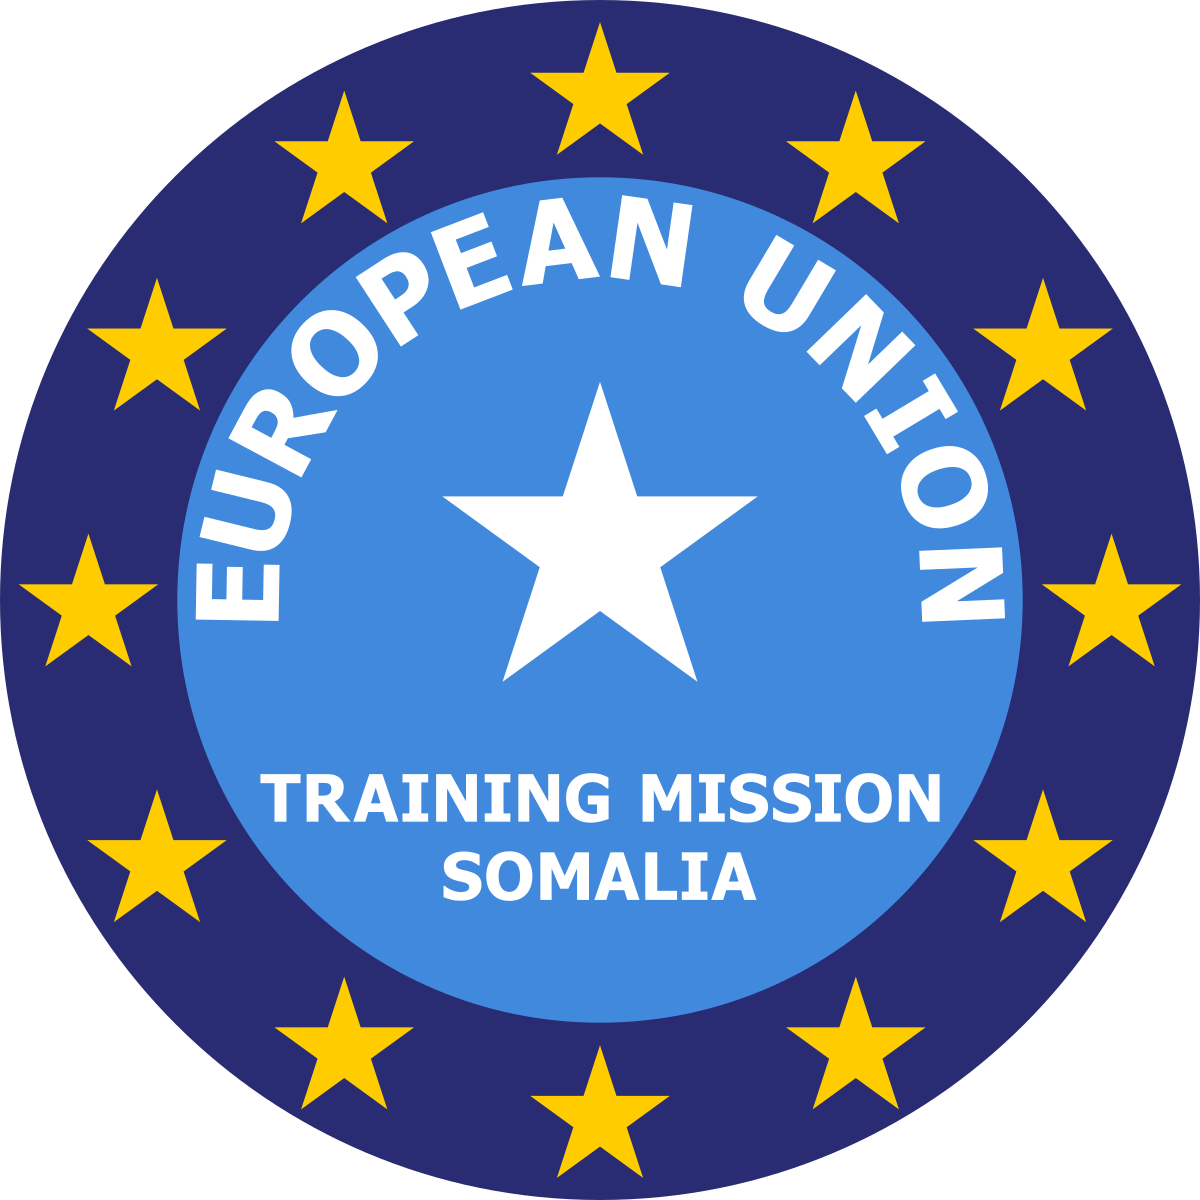 The European Union Training Mission (eutm) In Mali Has Suspended Operations In The Country After A Staff Member Tested Positive For Covid 19, The Respiratory Illness Caused By The New Coronavirus. T